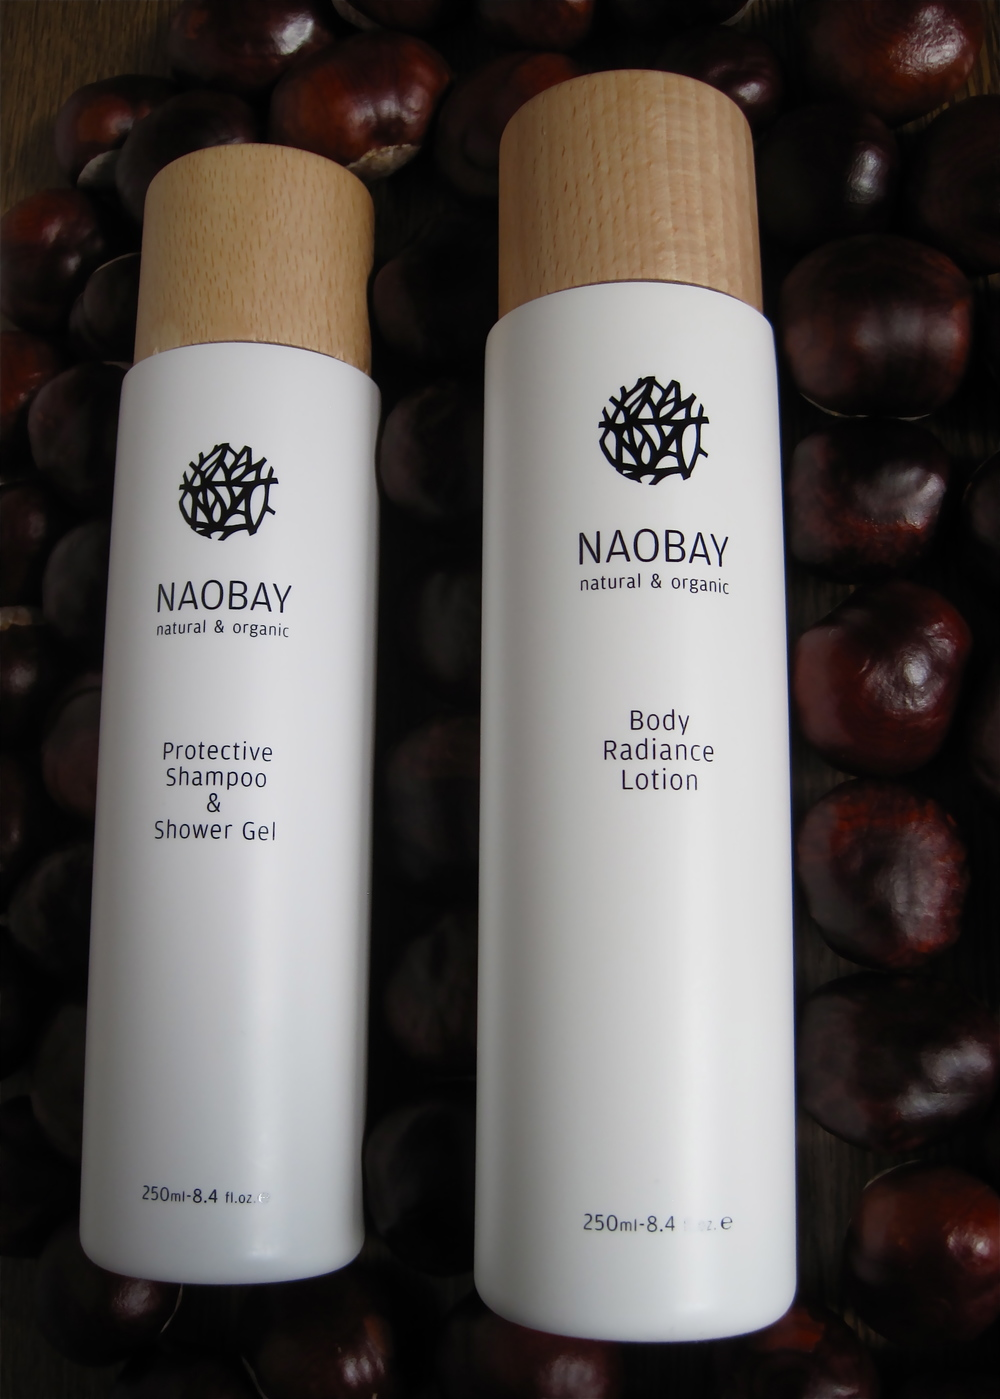 NAOBAY-Protective-Shampoo-and-Shower-Gel-Body-Radiance-Lotion.JPG